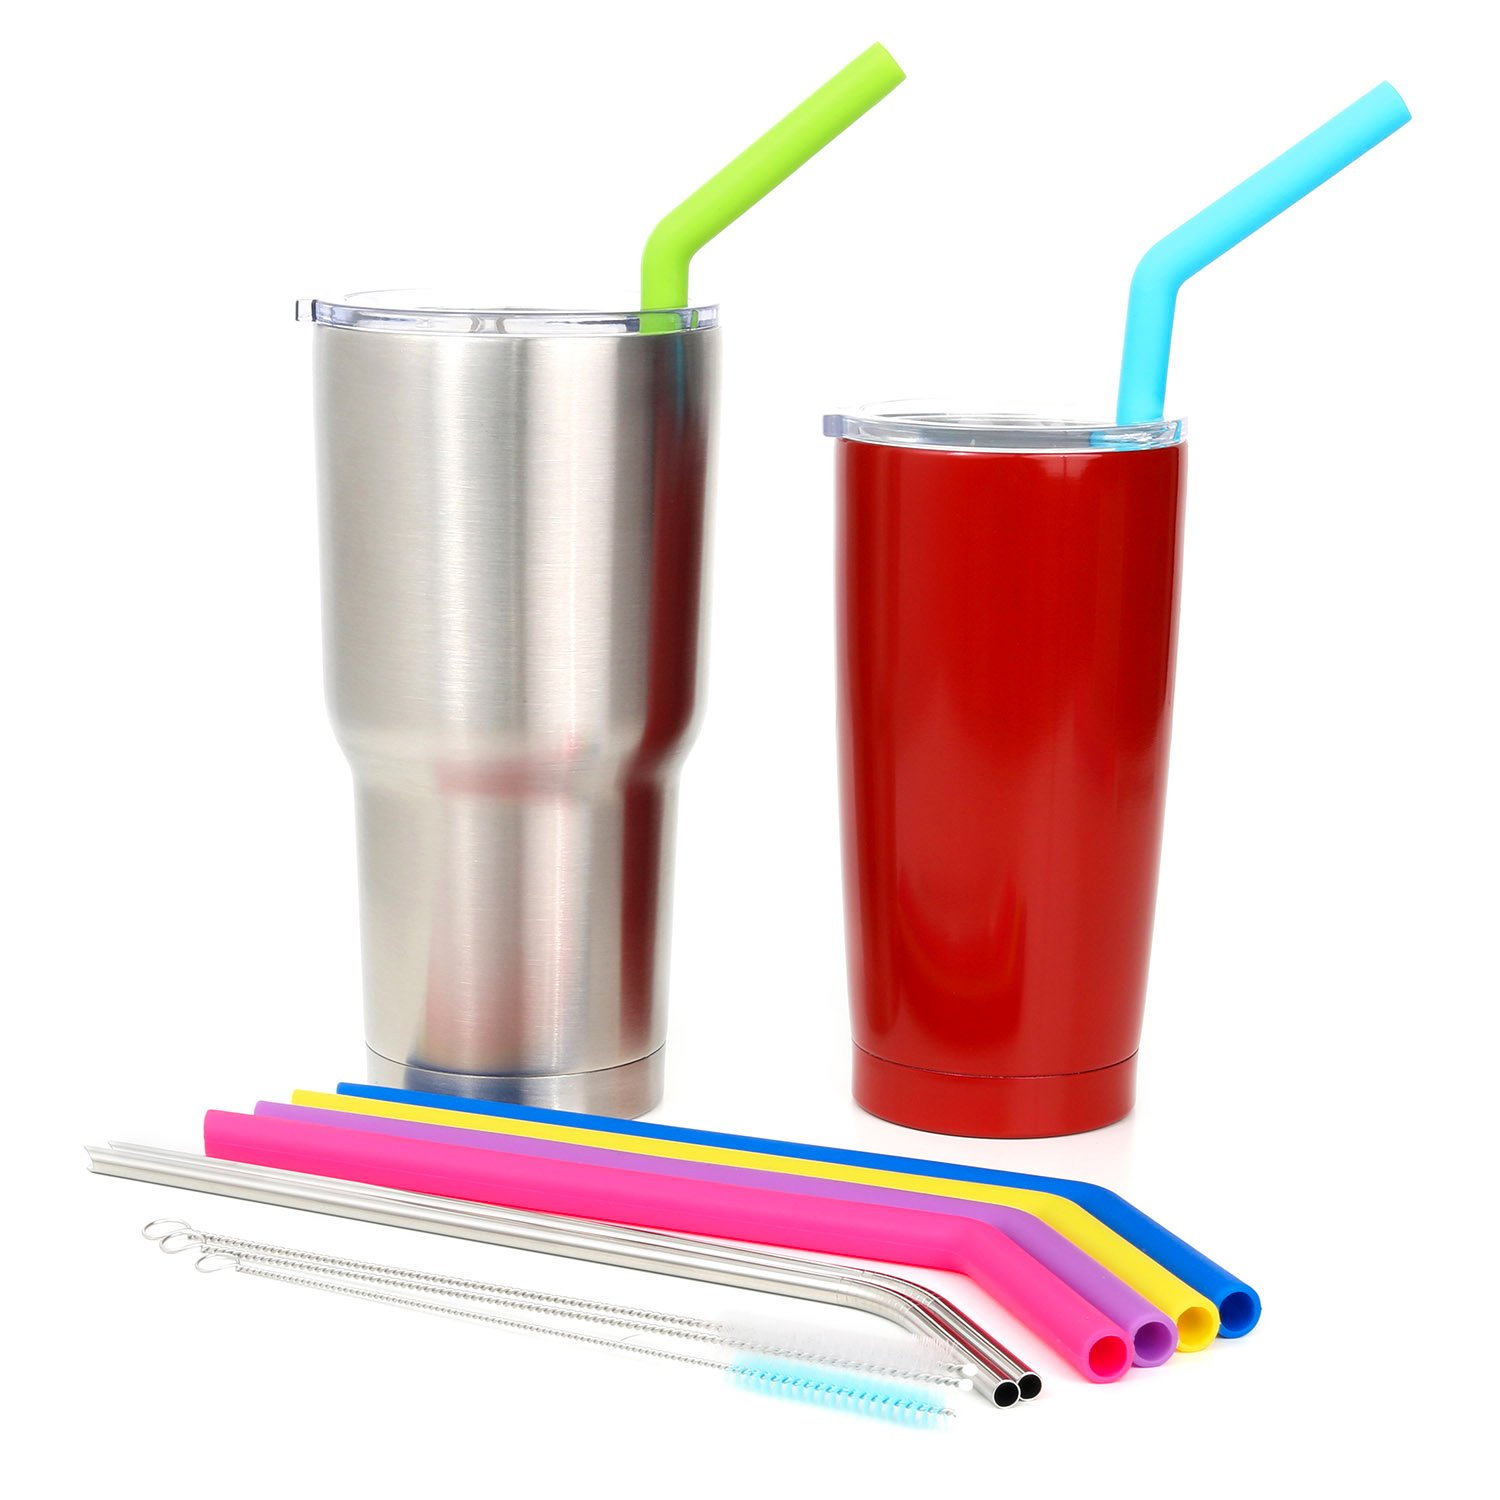 Big Silicone Straws for 30 oz Tumbler Yeti/Rtic Complete Bundle - Reusable Silicone Straws Set of 6 - Stainless Steel Straws Extra Long - Brushes and Storage Pouch Included by Kitchen Up (Image #4)